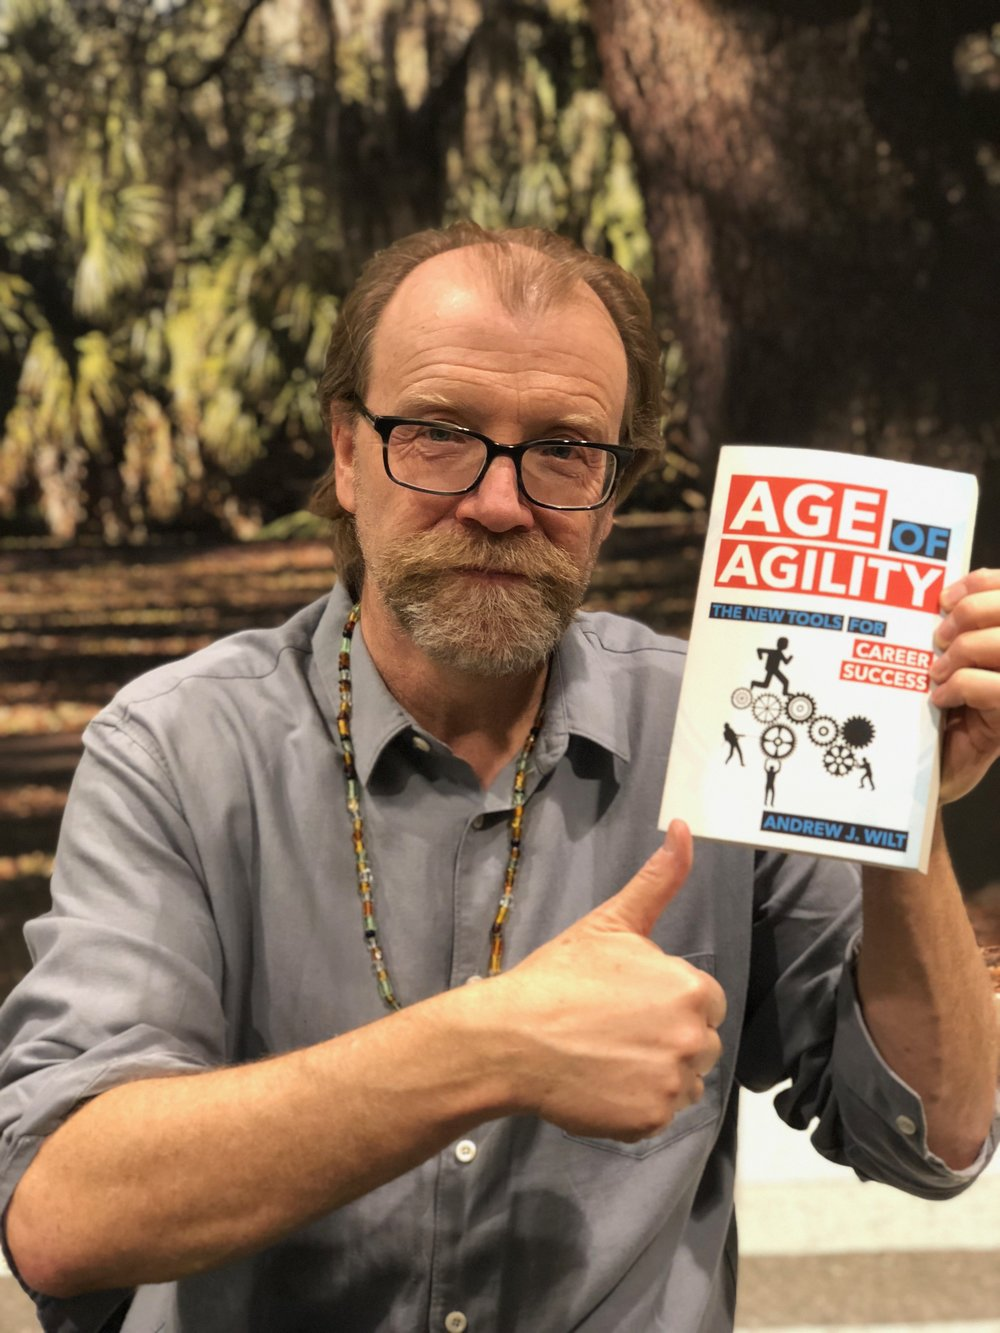 George Saunders Age of Agility 1